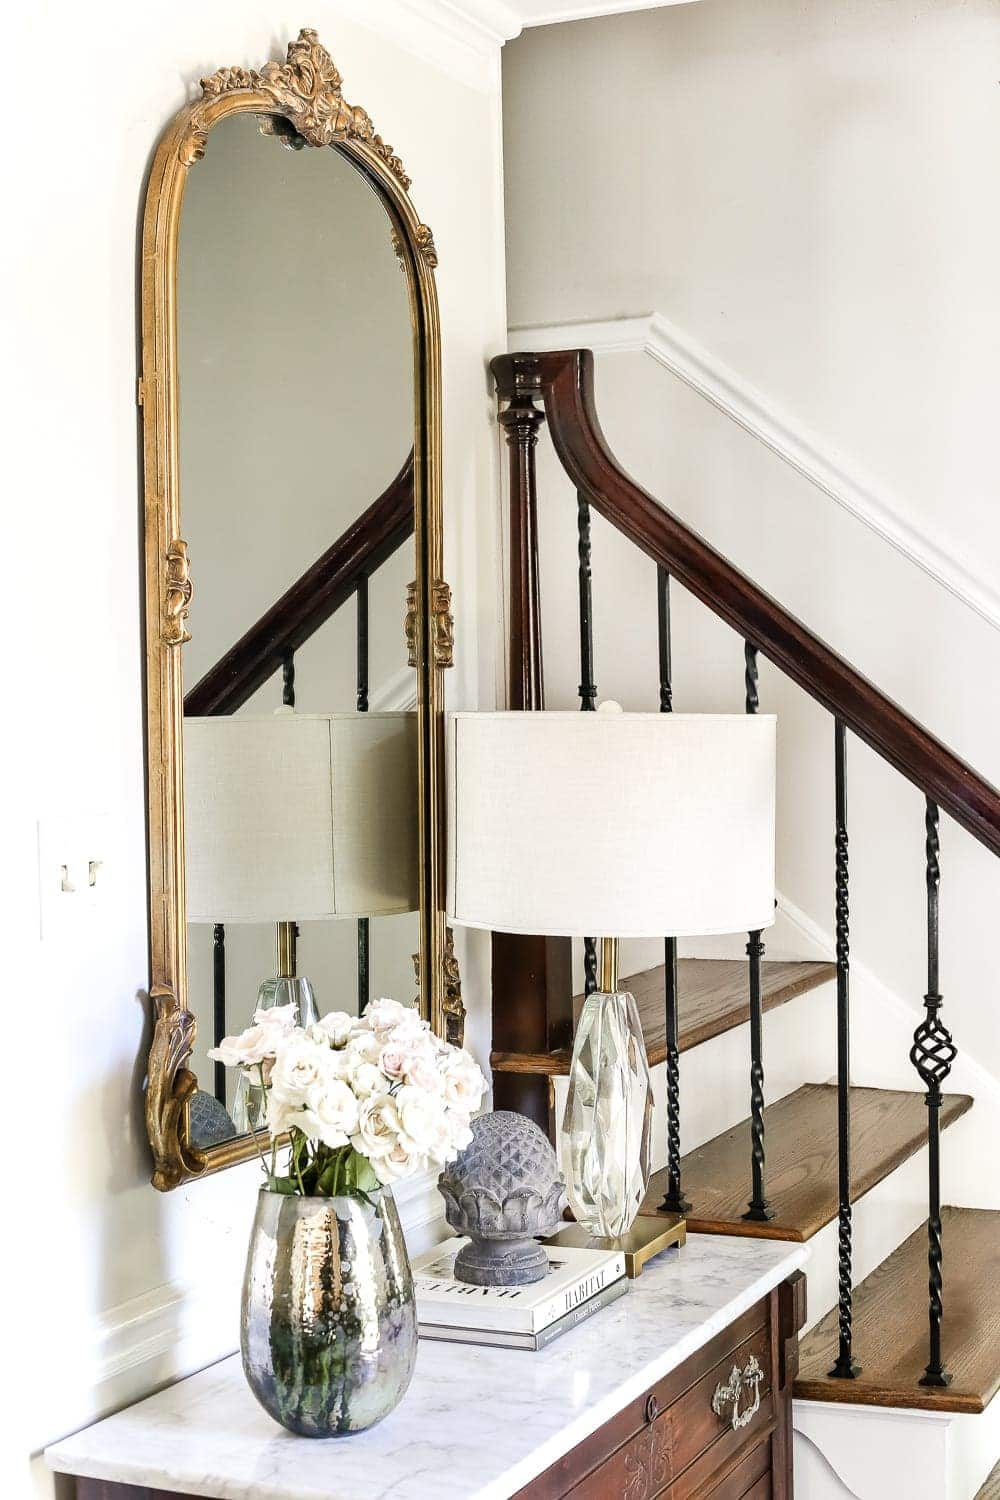 How to Make Your Home Look Luxurious on a Budget | blesserhouse.com - 8 tips to make your home look luxurious on a budget with ideas for choosing finishes, lighting, art, and small details that only look expensive. foyer entryway